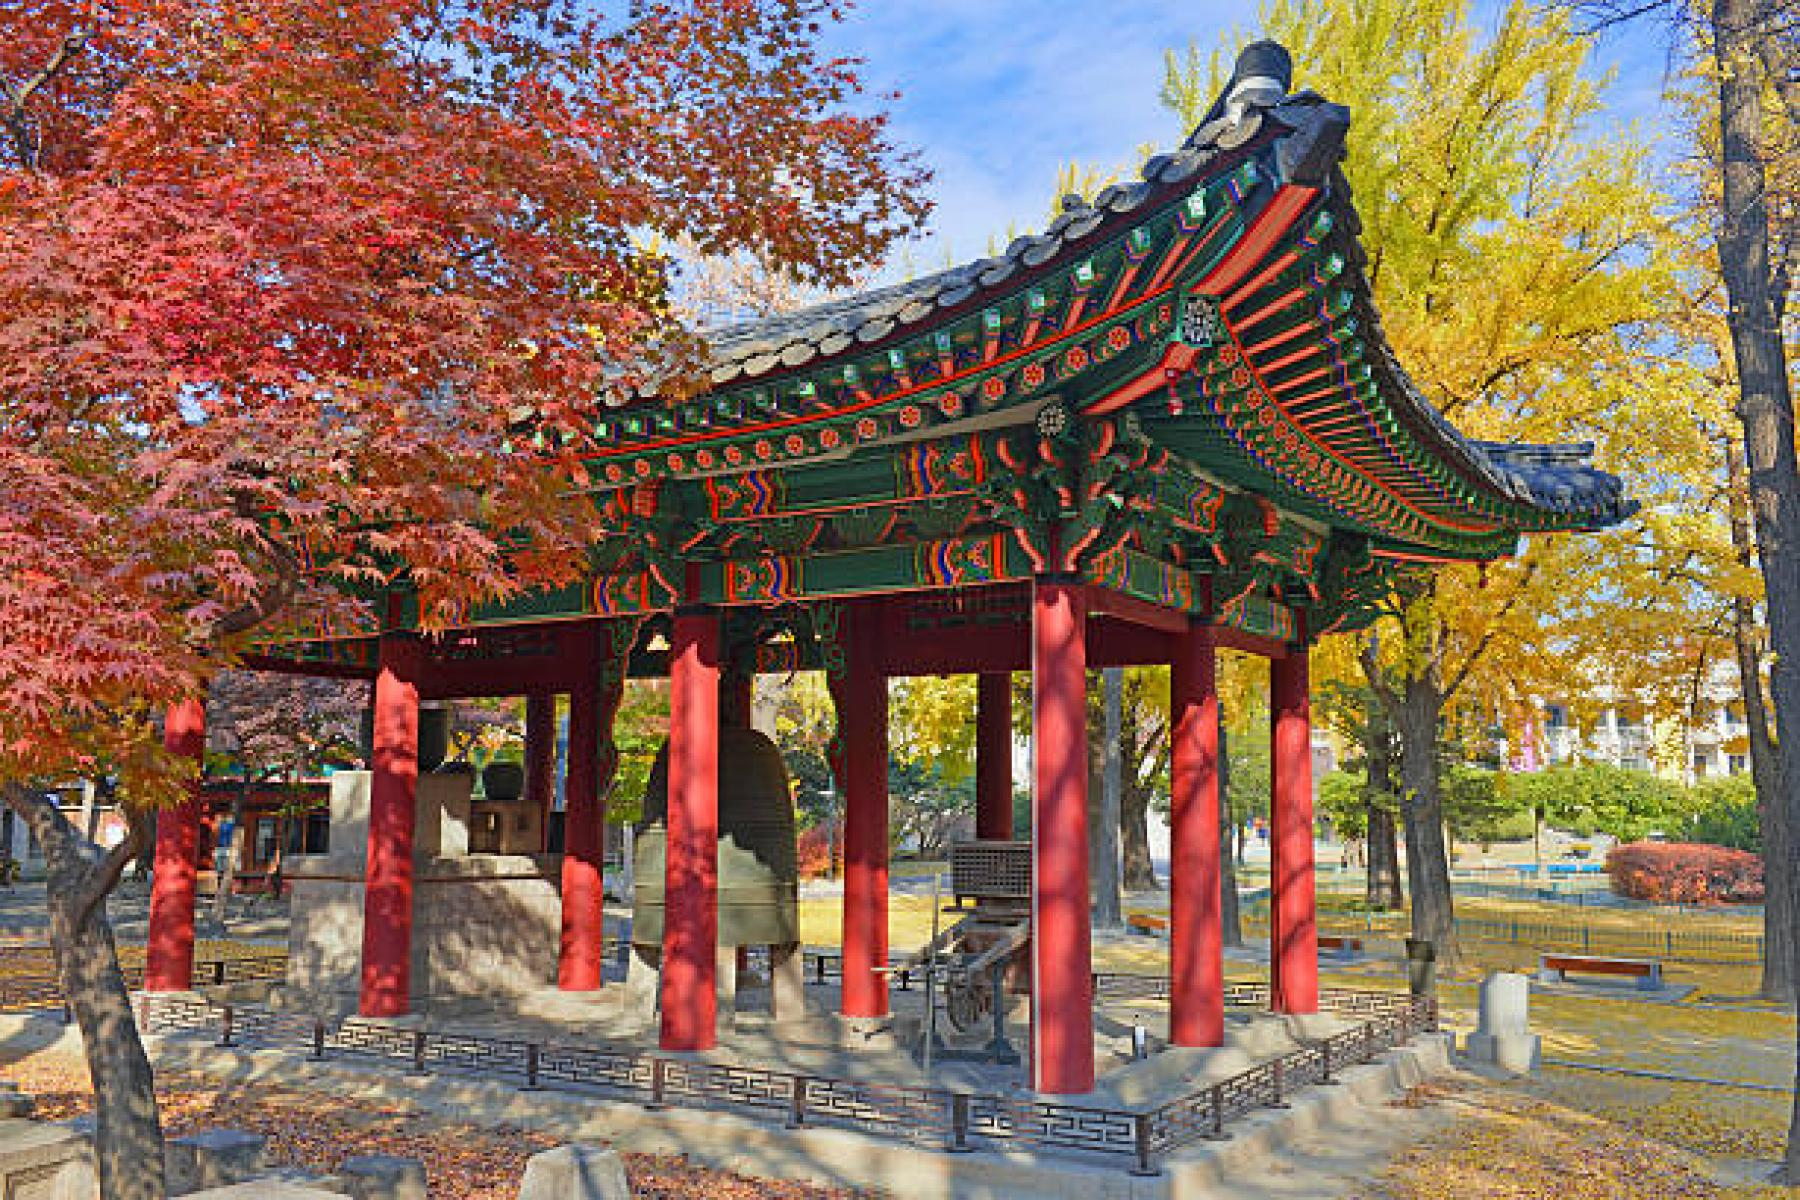 Korea Mesmerizing Fall Foliage 2017 starting at Seoul, South Korea